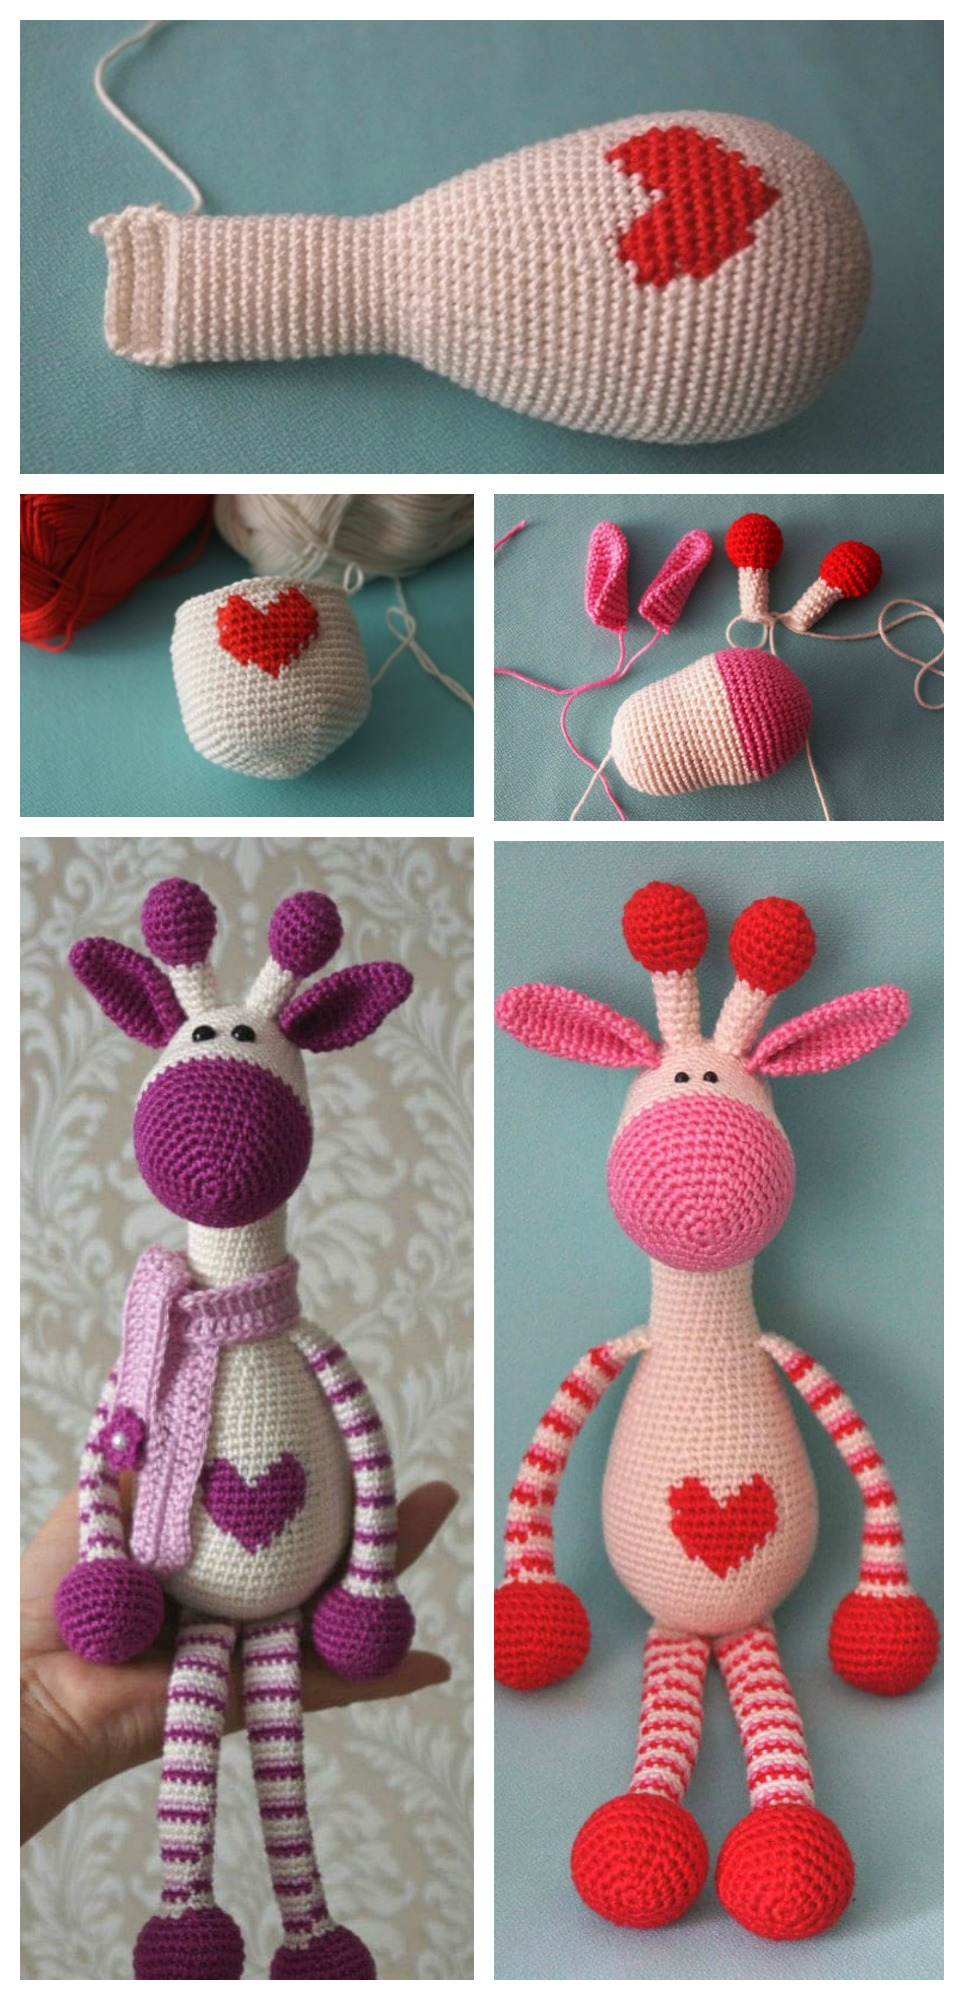 Cute Crochet Giraffe Free Pattern